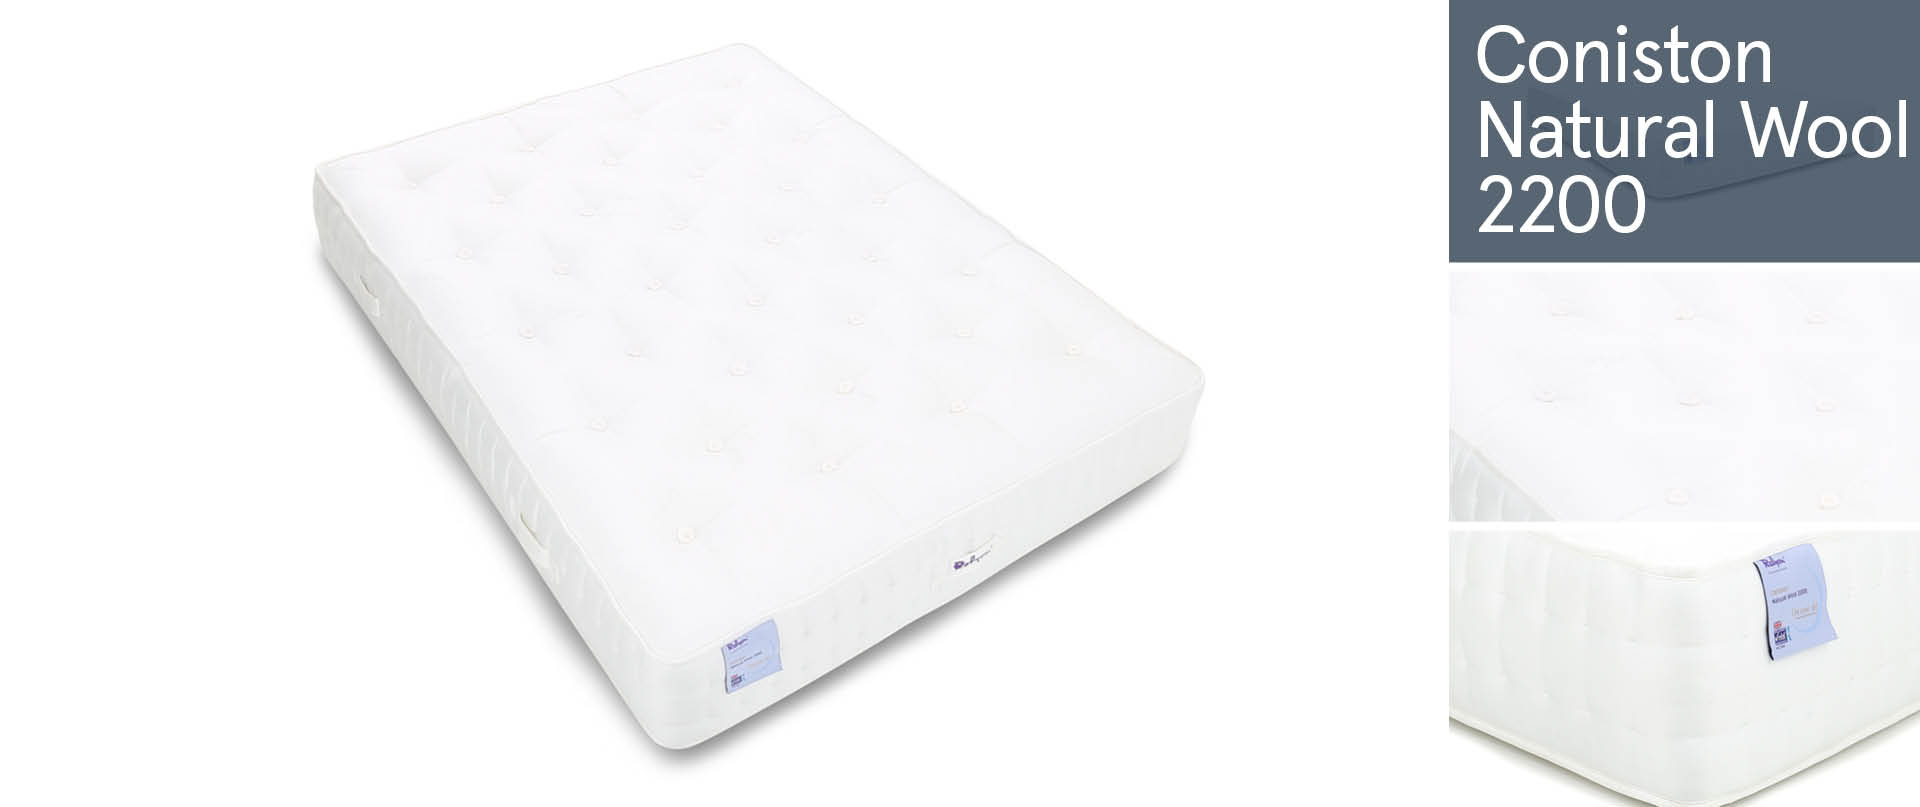 Coniston Natural Wool 2200 Mattresses Ranges